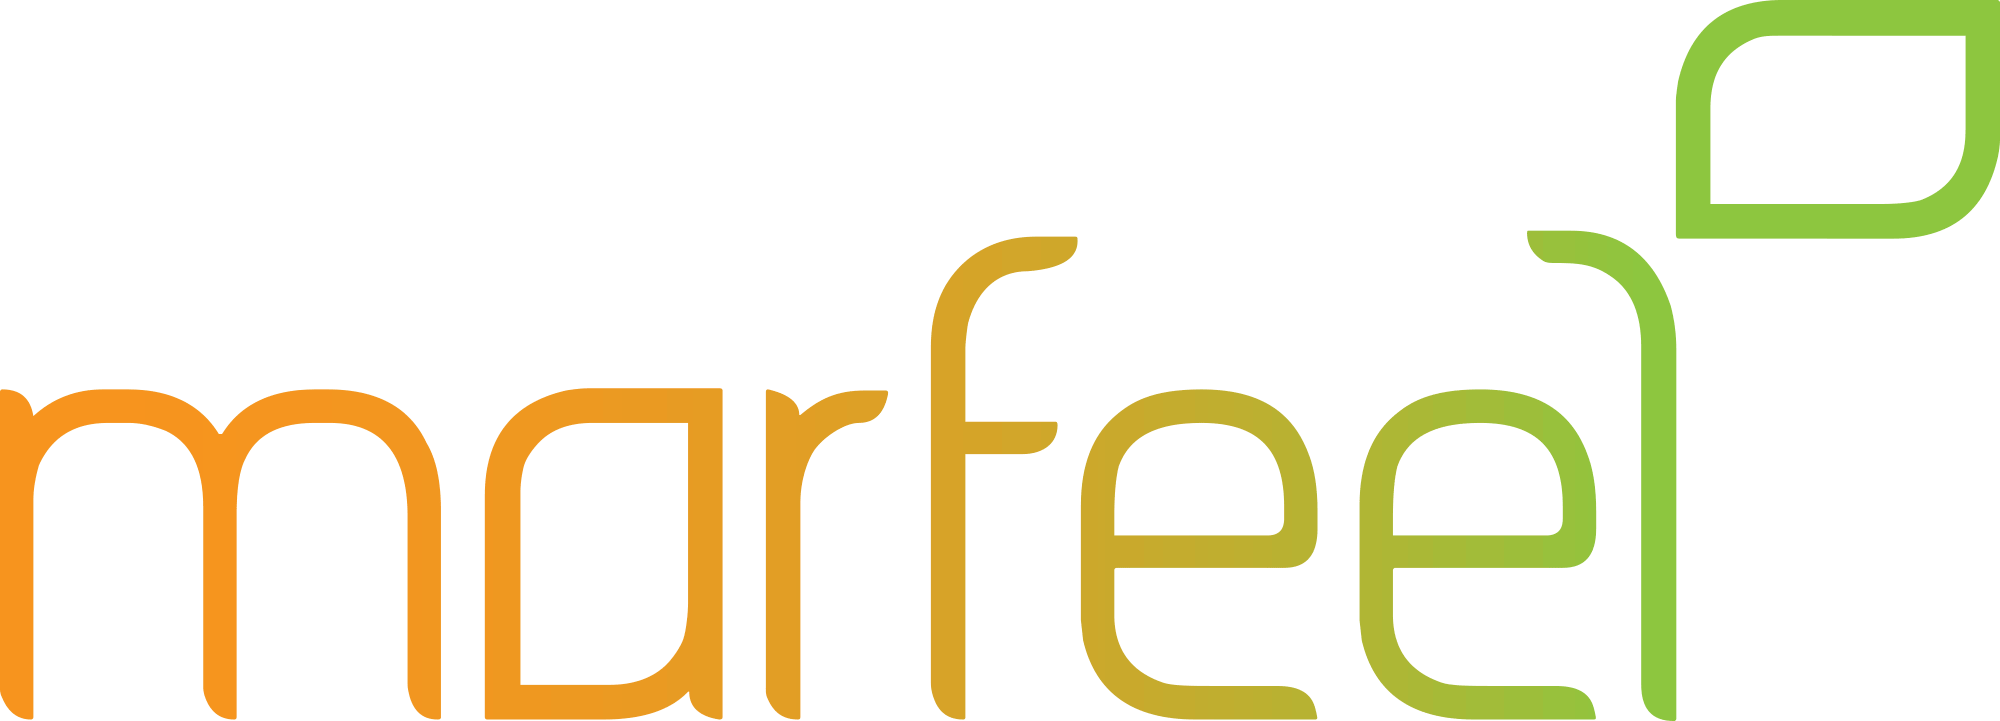 Revolutionizing the way publishers create, optimize and monetize their mobile websites. Marfeel's proprietary technology gathers insightful data on user behavior and dynamically adjusts site layout to match usage patterns, optimizing user engagement and maximizing ad revenue.